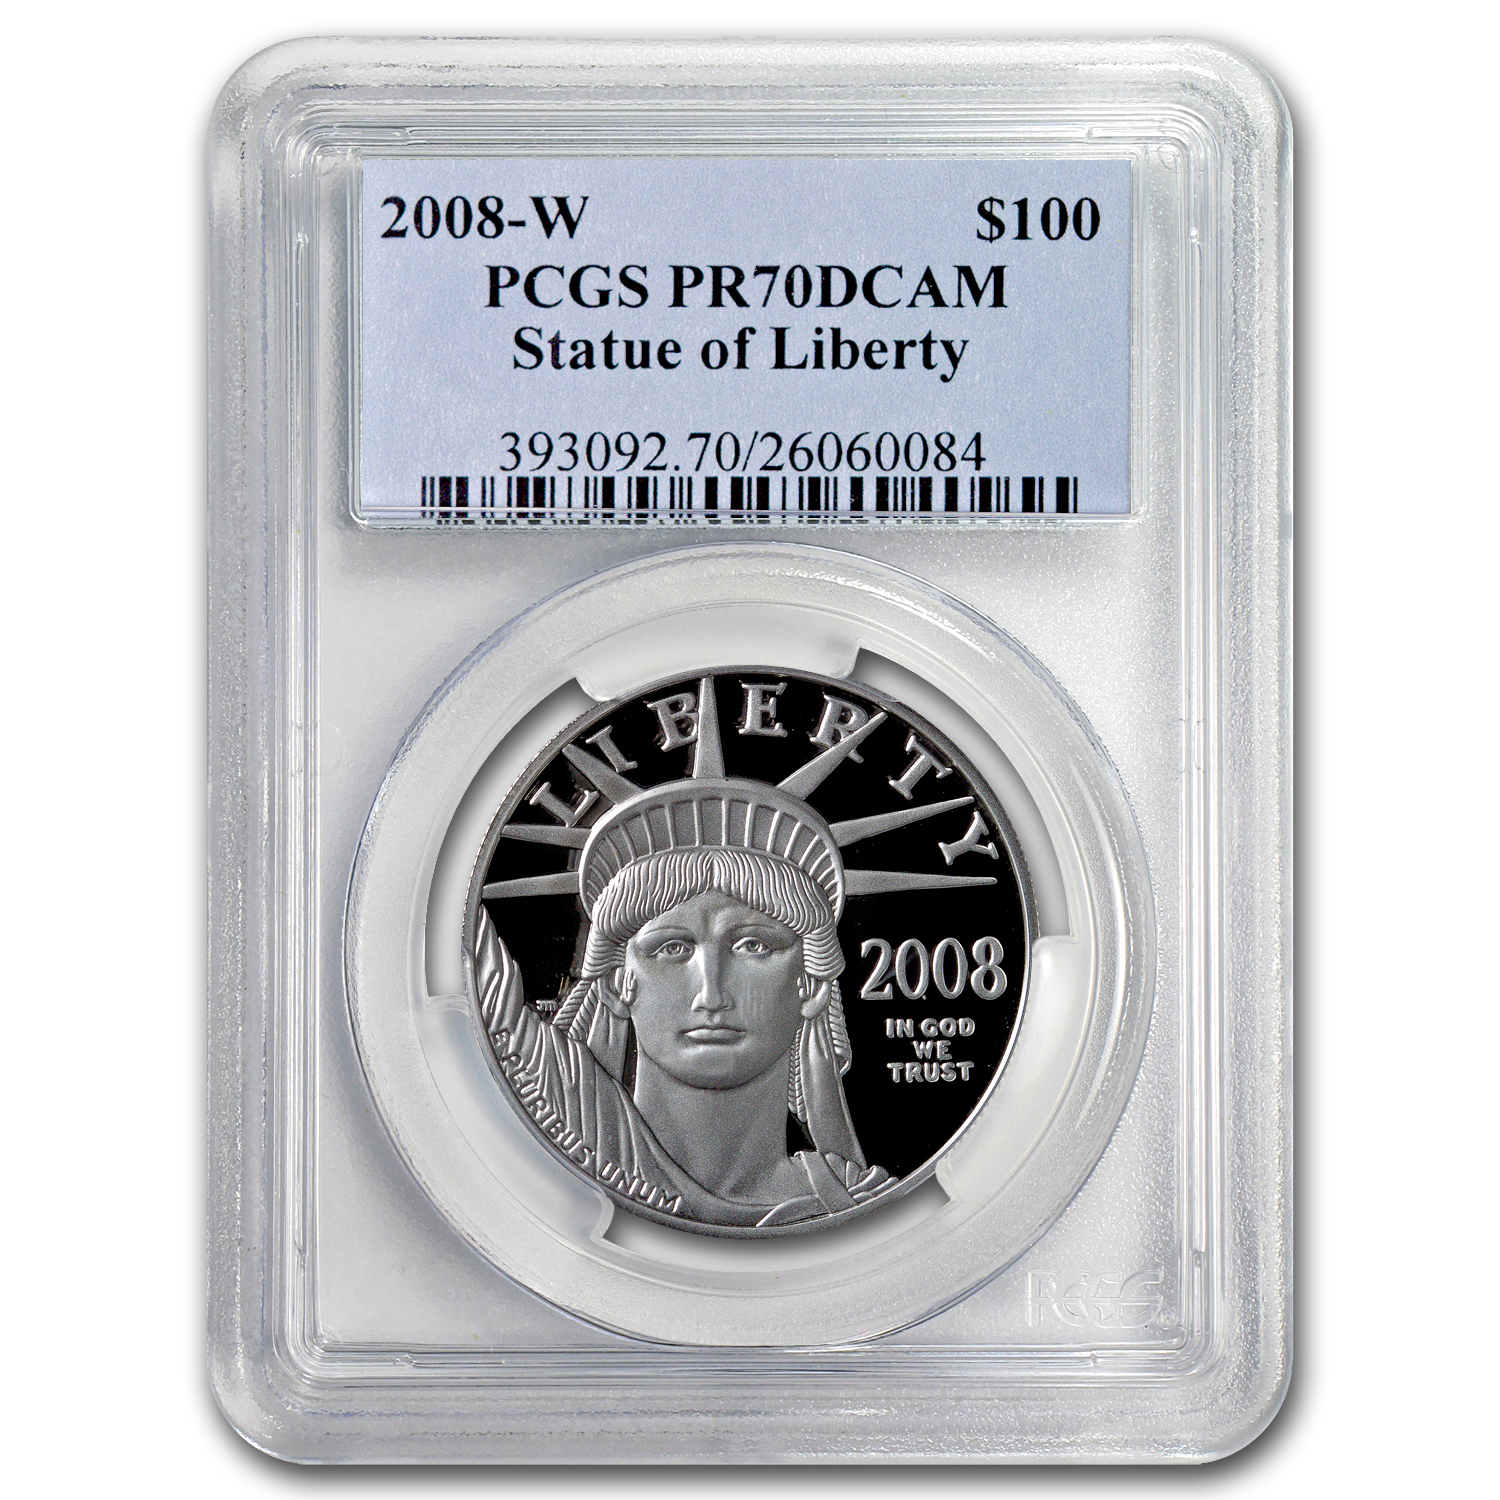 2008-W 1 oz Proof Platinum American Eagle PR-70 PCGS Registry Set